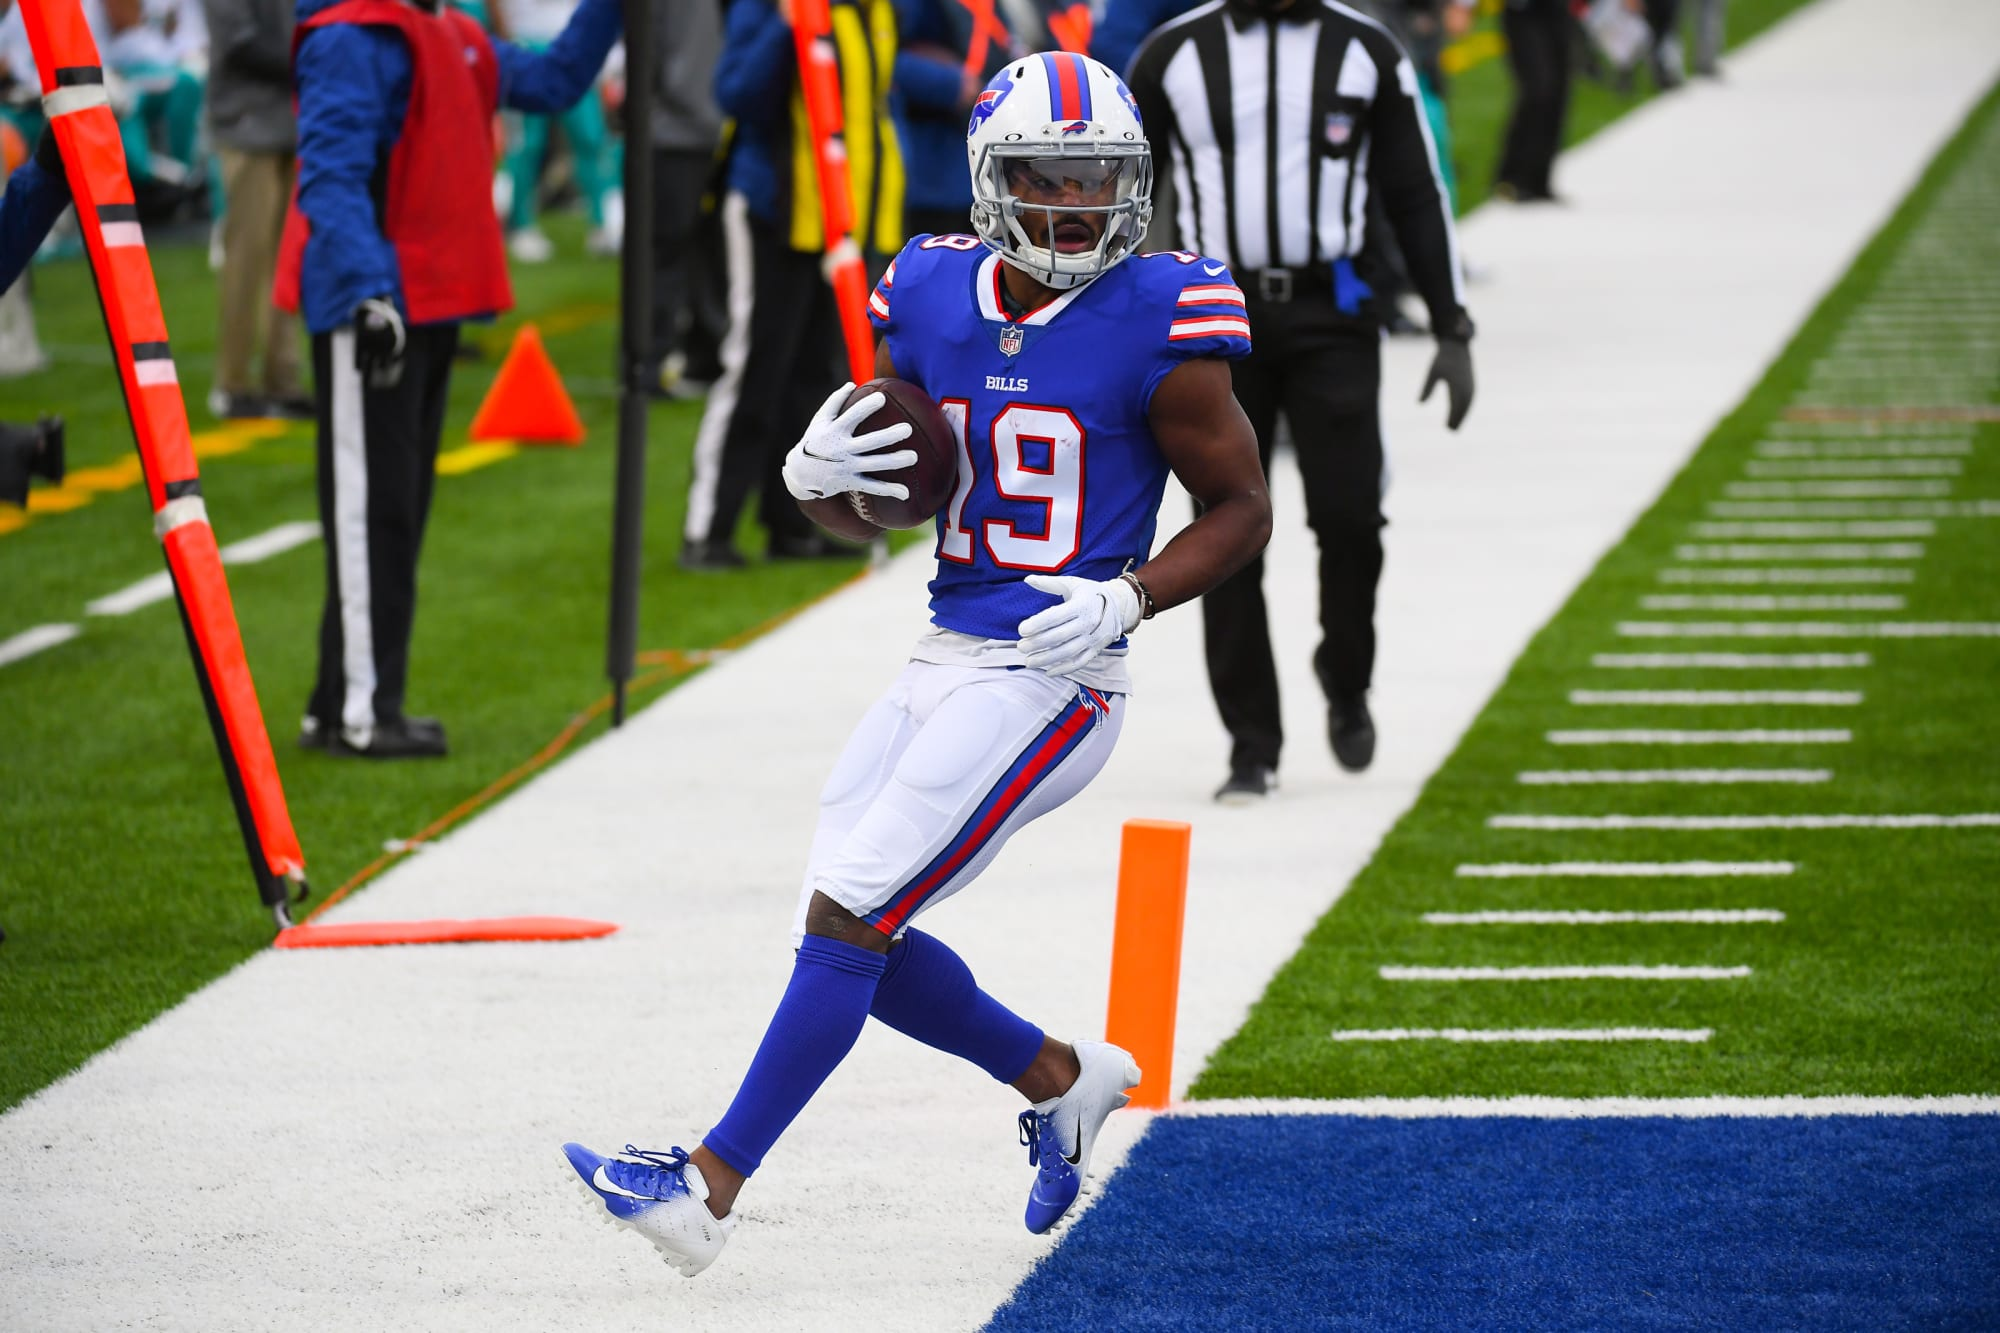 Buffalo Bills: 3 under-the-radar players to watch in AFC Championship